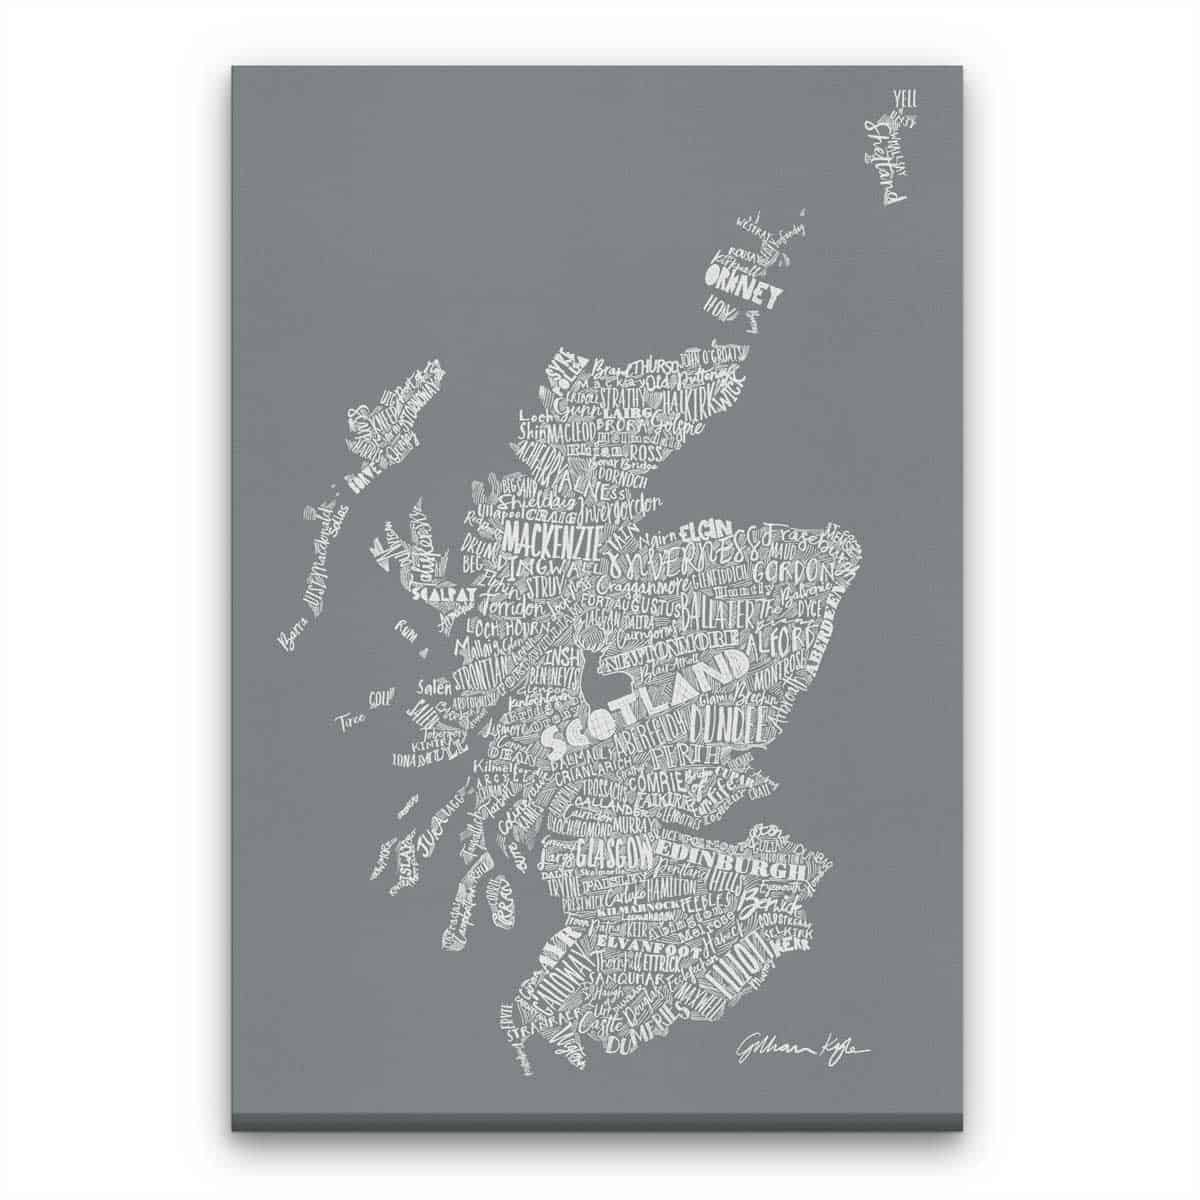 Gillian Kyle Scottish canvas Print Art Gallery Mapped Out Illustrated typographic Scotland Map Print in modern grey